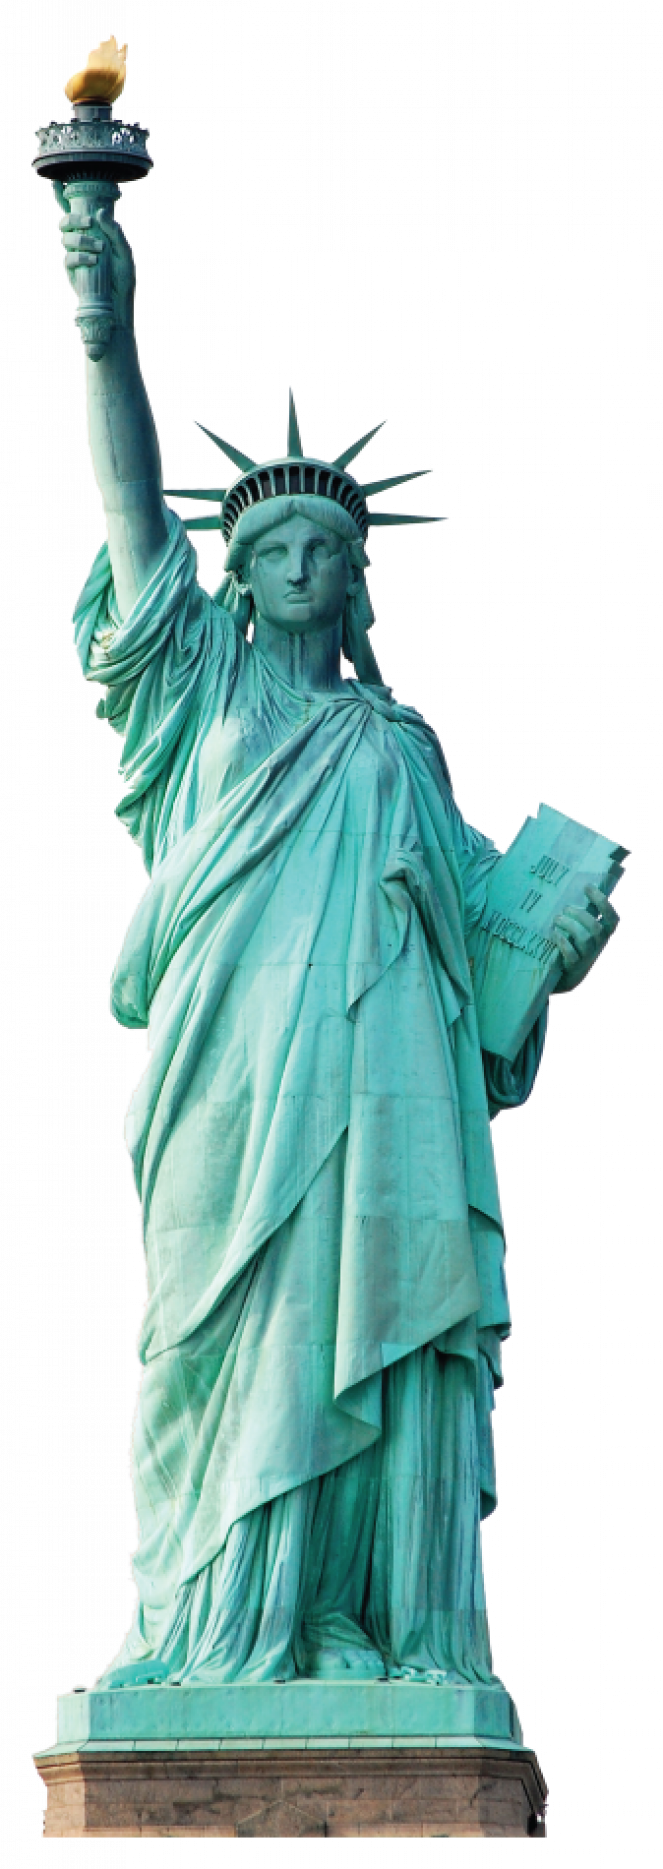 Statue of liberty crown clipart banner free Muursticker van het Vrijheidsbeeld in New York - Roomit.nl | Amerika ... banner free